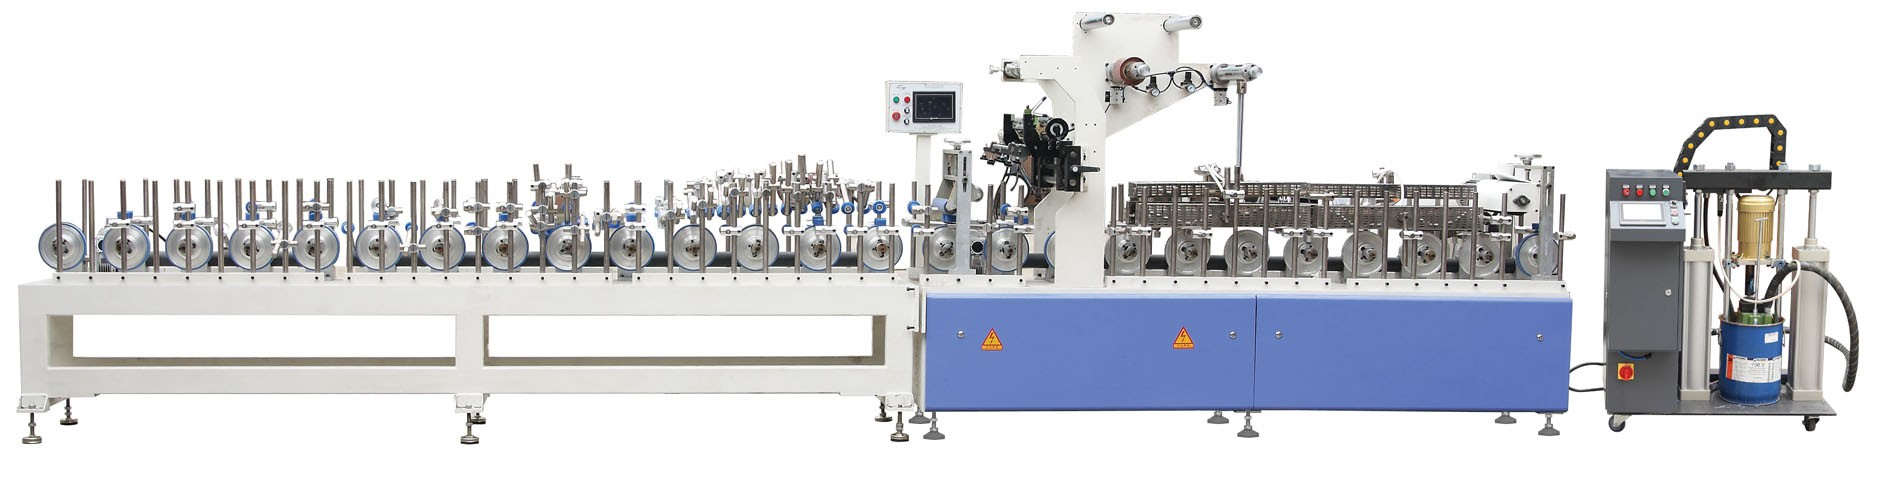 PUR Glue Profile Wrapping Line Manufacturers, PUR Glue Profile Wrapping Line Factory, Supply PUR Glue Profile Wrapping Line